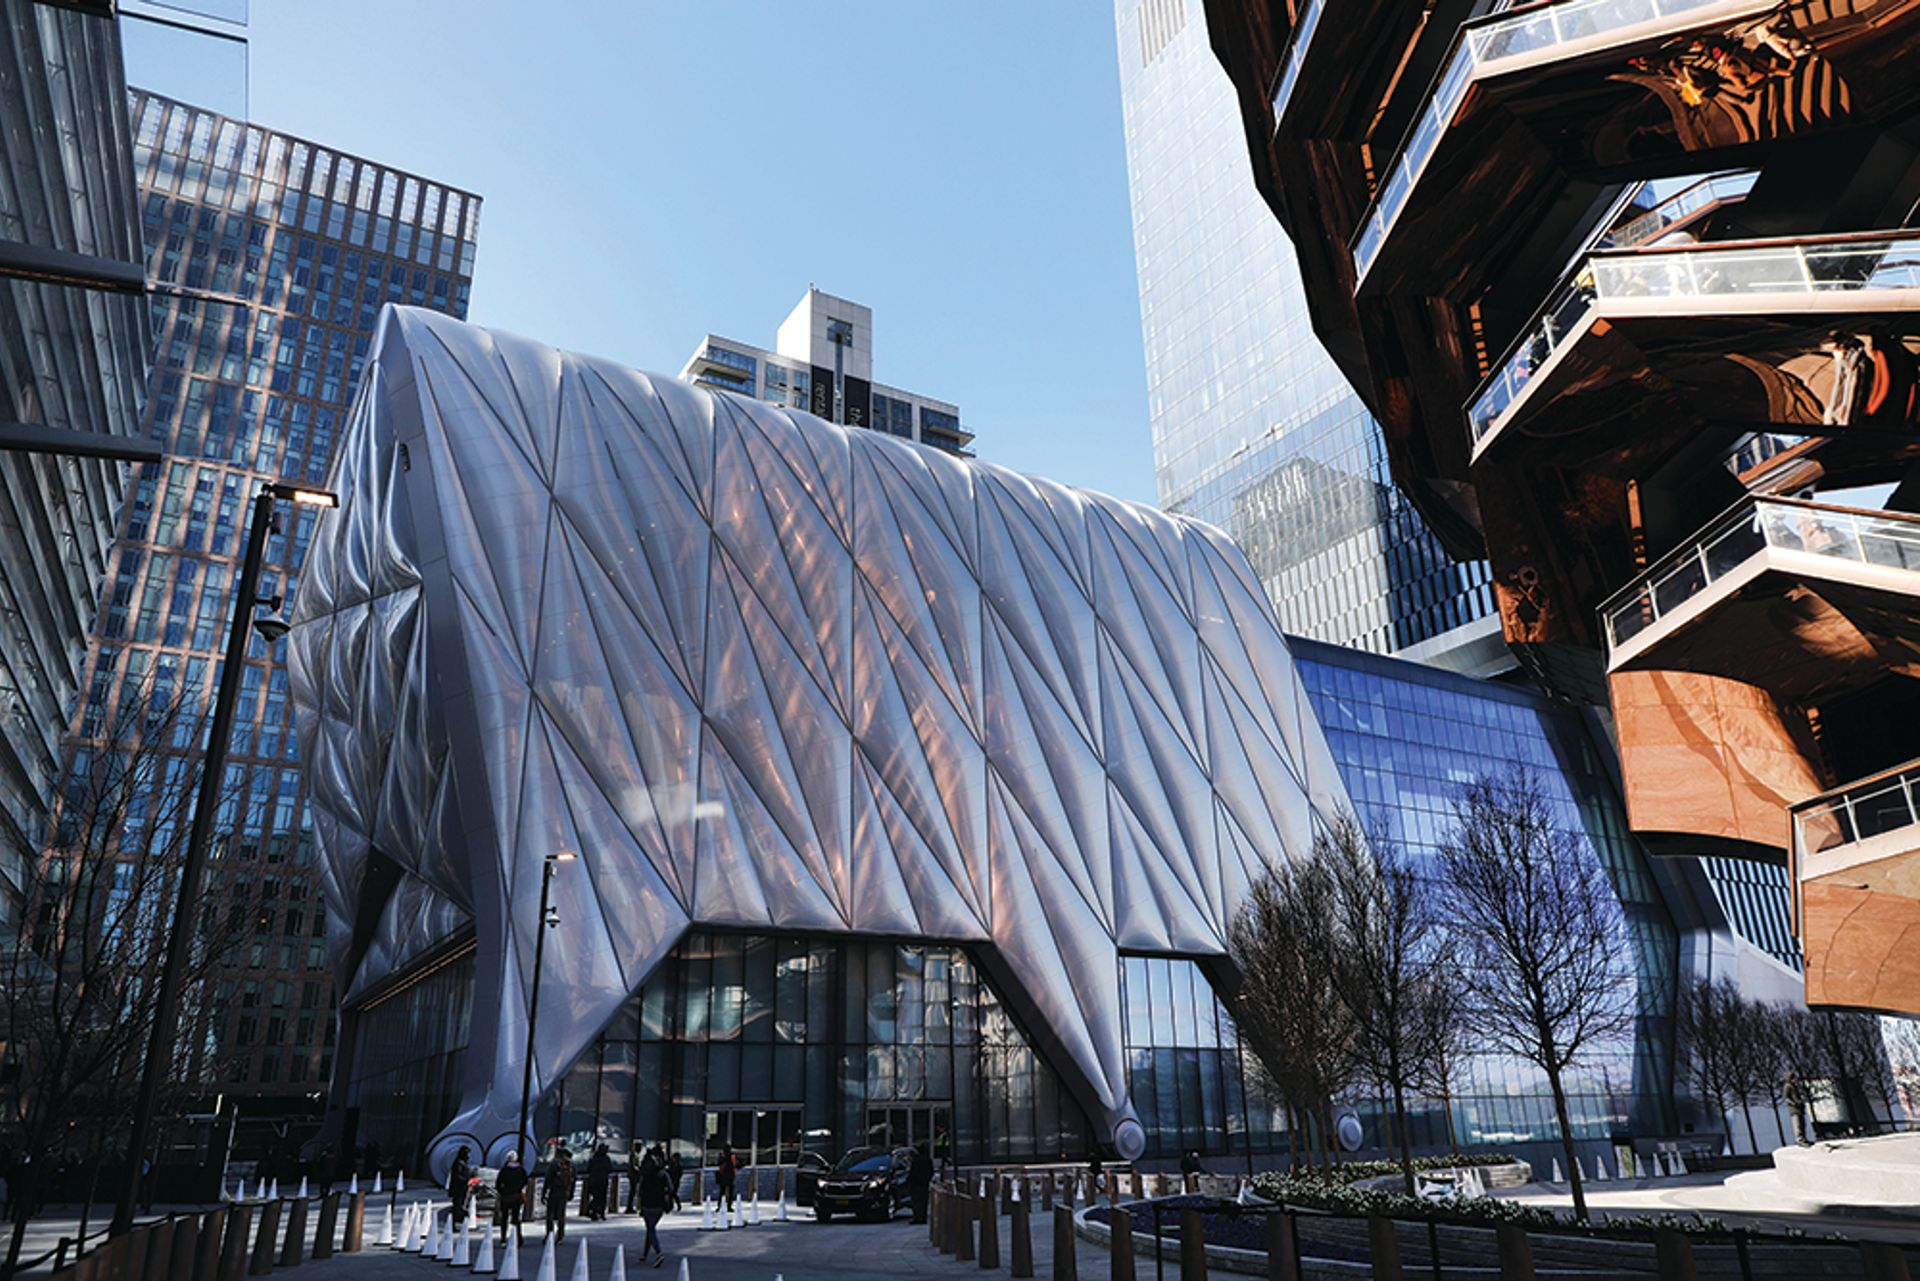 Hudson Yards' new $475m arts centre the Shed on Manhattan's west side attempts to be both popular and edgy Xinhua/ via Getty Images